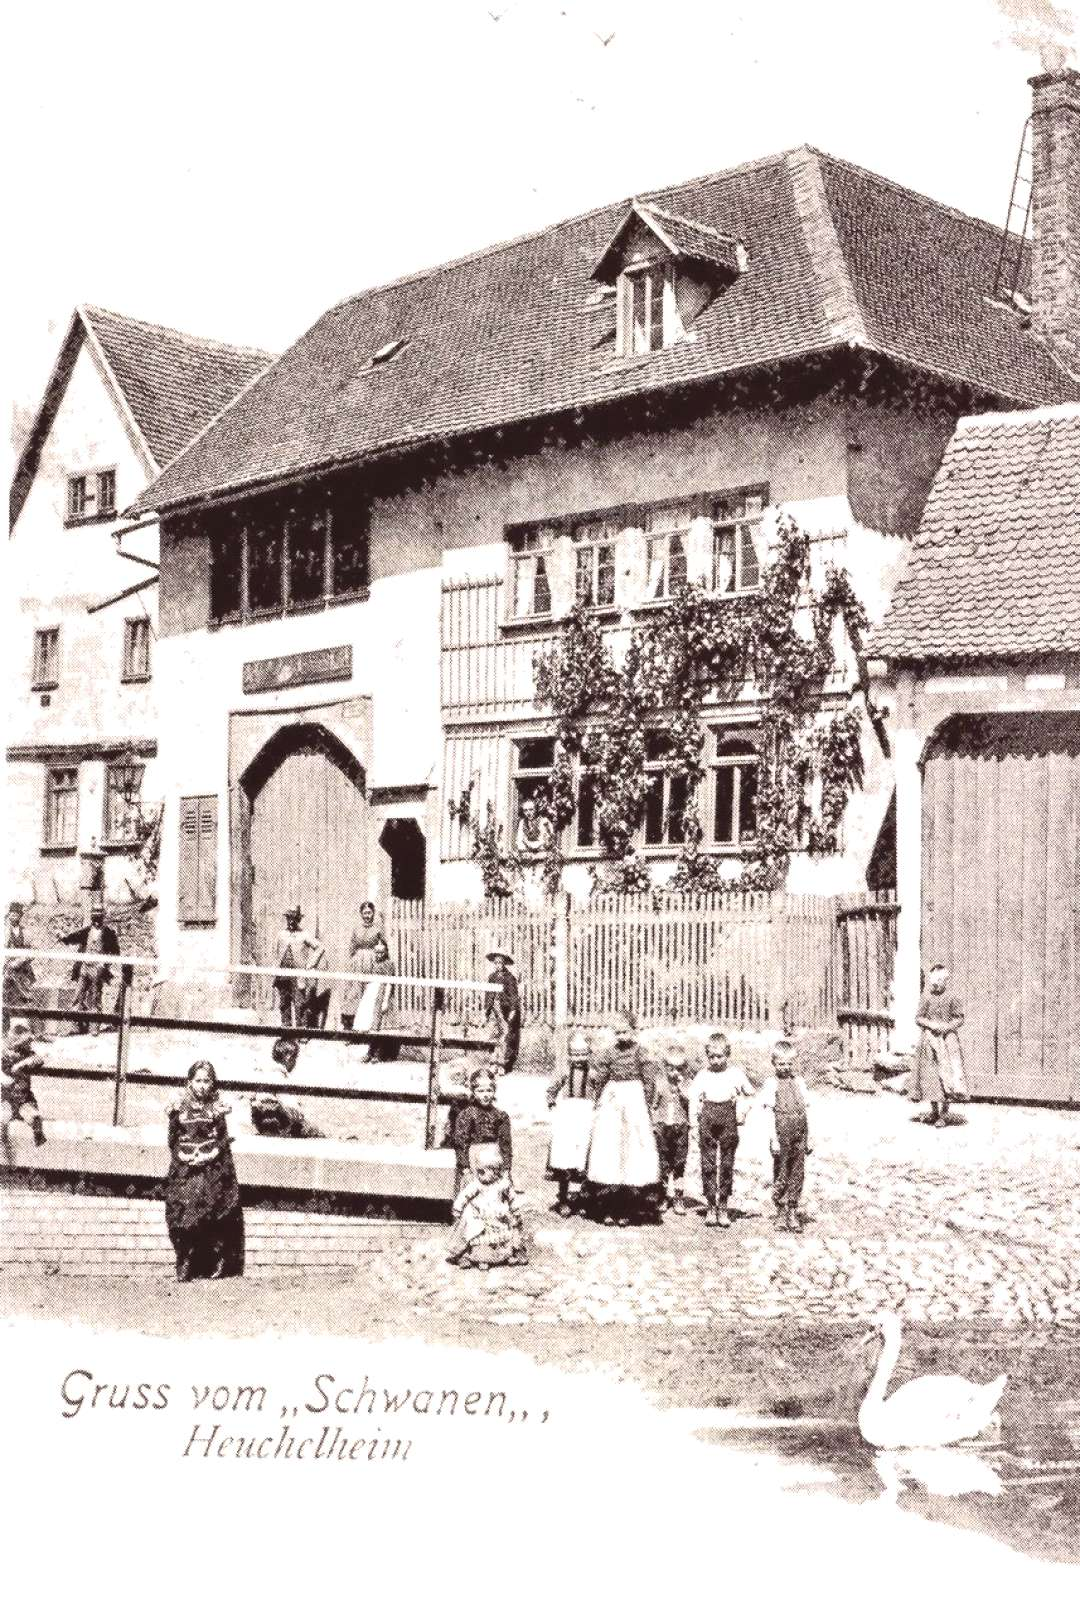 Vintage picture of an old inn in Heuchelheim, Hessen, Central Germany -